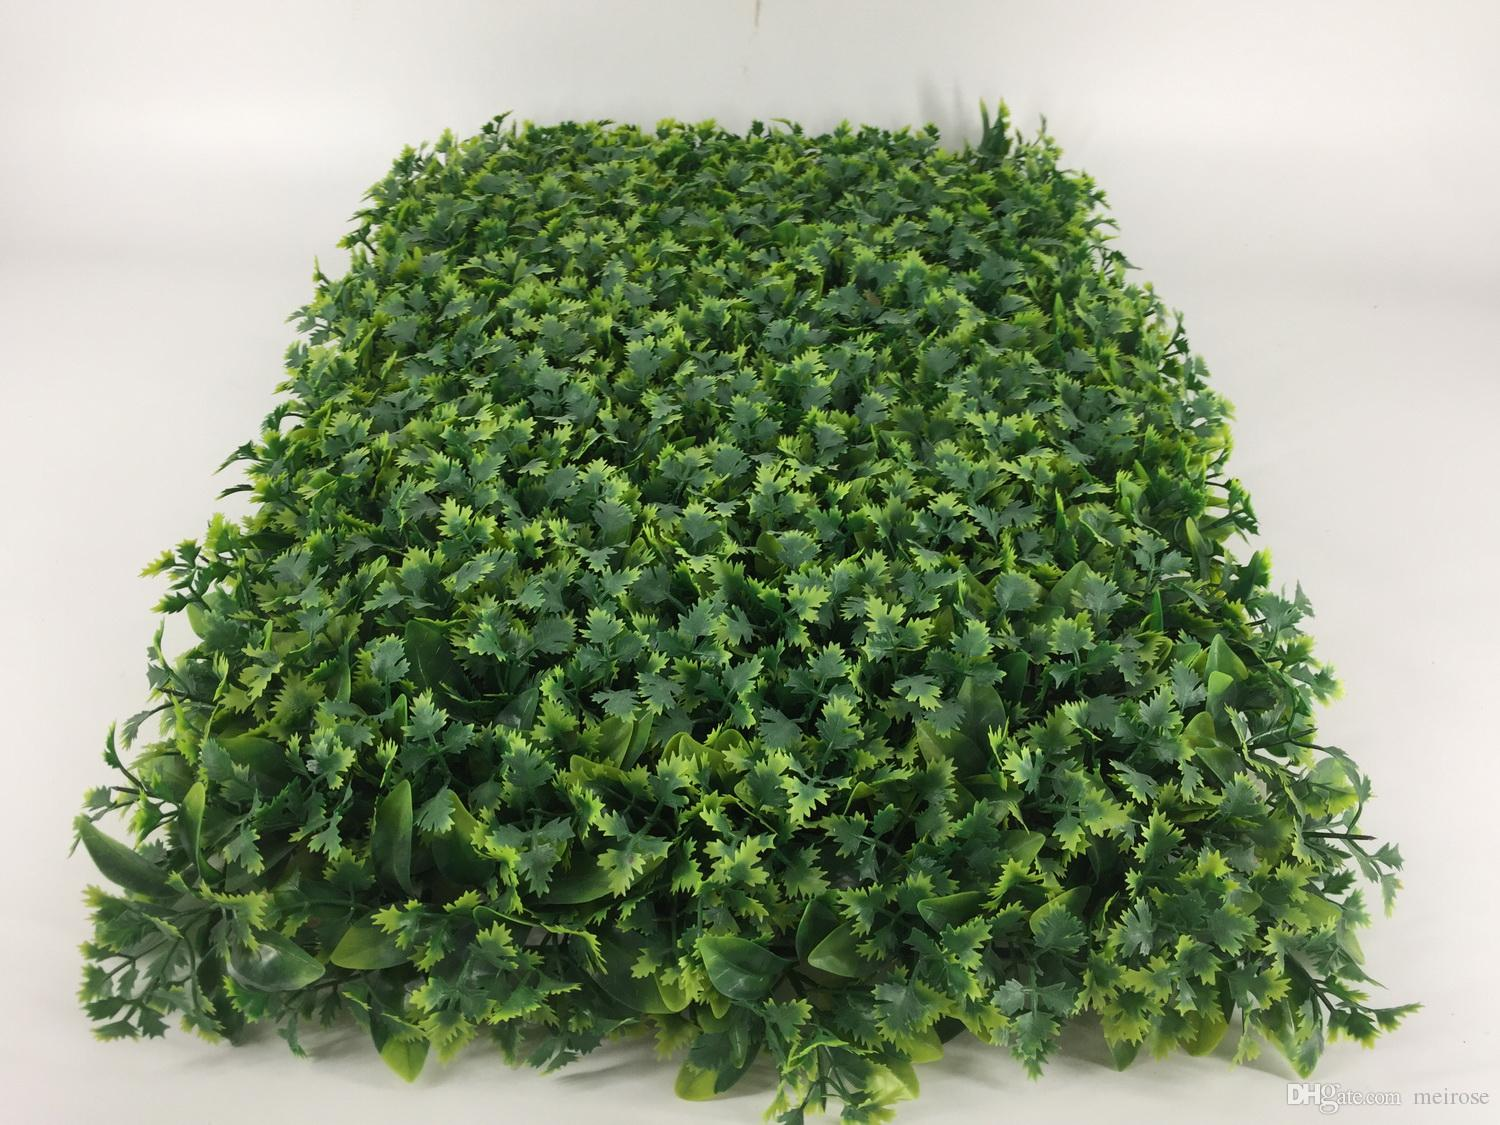 Green Wall UV Artificial Grass Turf indoor/outdoor 60cmx40cm Fake Grass Decoration Boxwood Natural & Realistic Looking Garden Lawn 125-8010